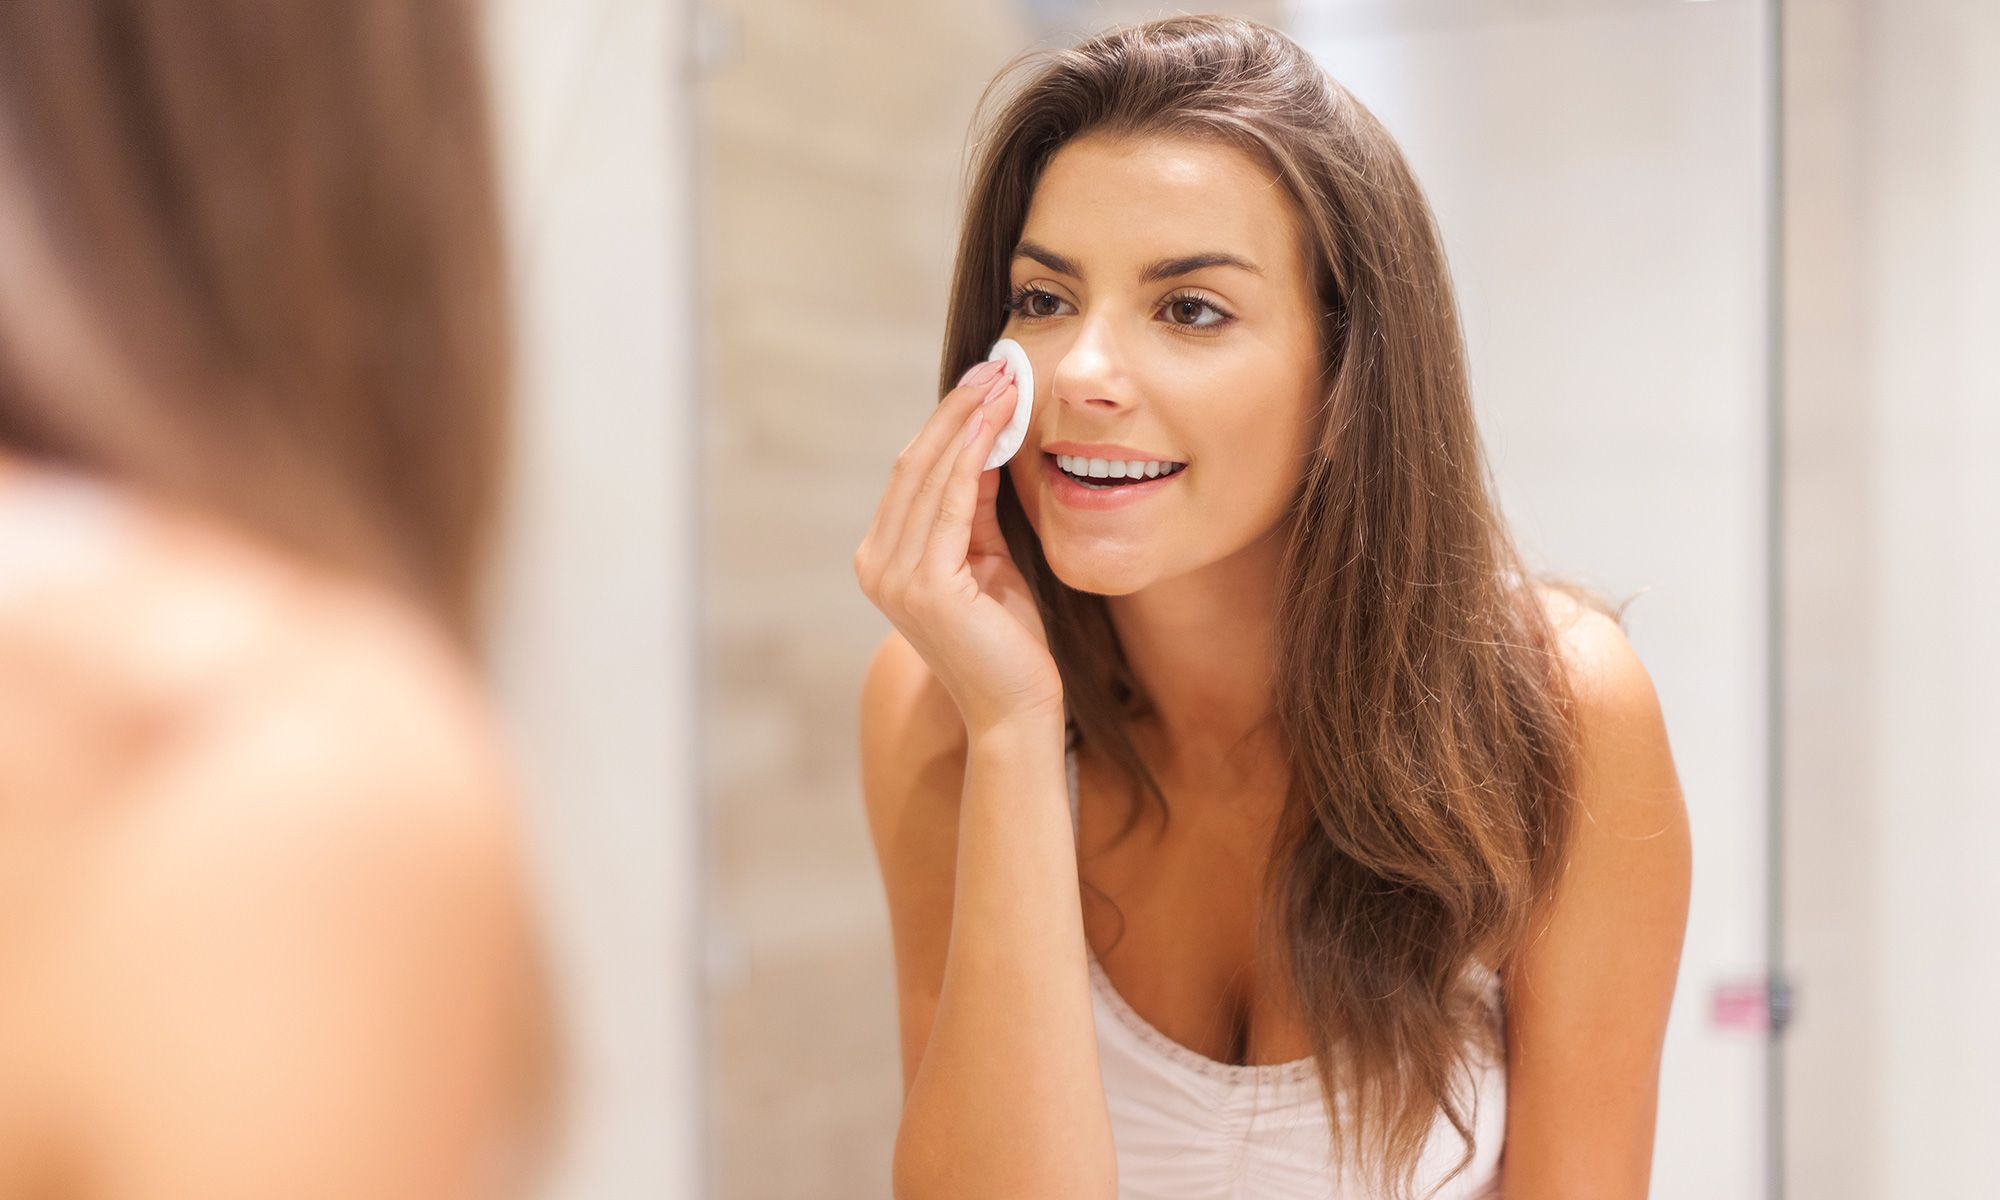 12 Anti-Ageing Beauty Tips and Tricks from a Skincare Expert